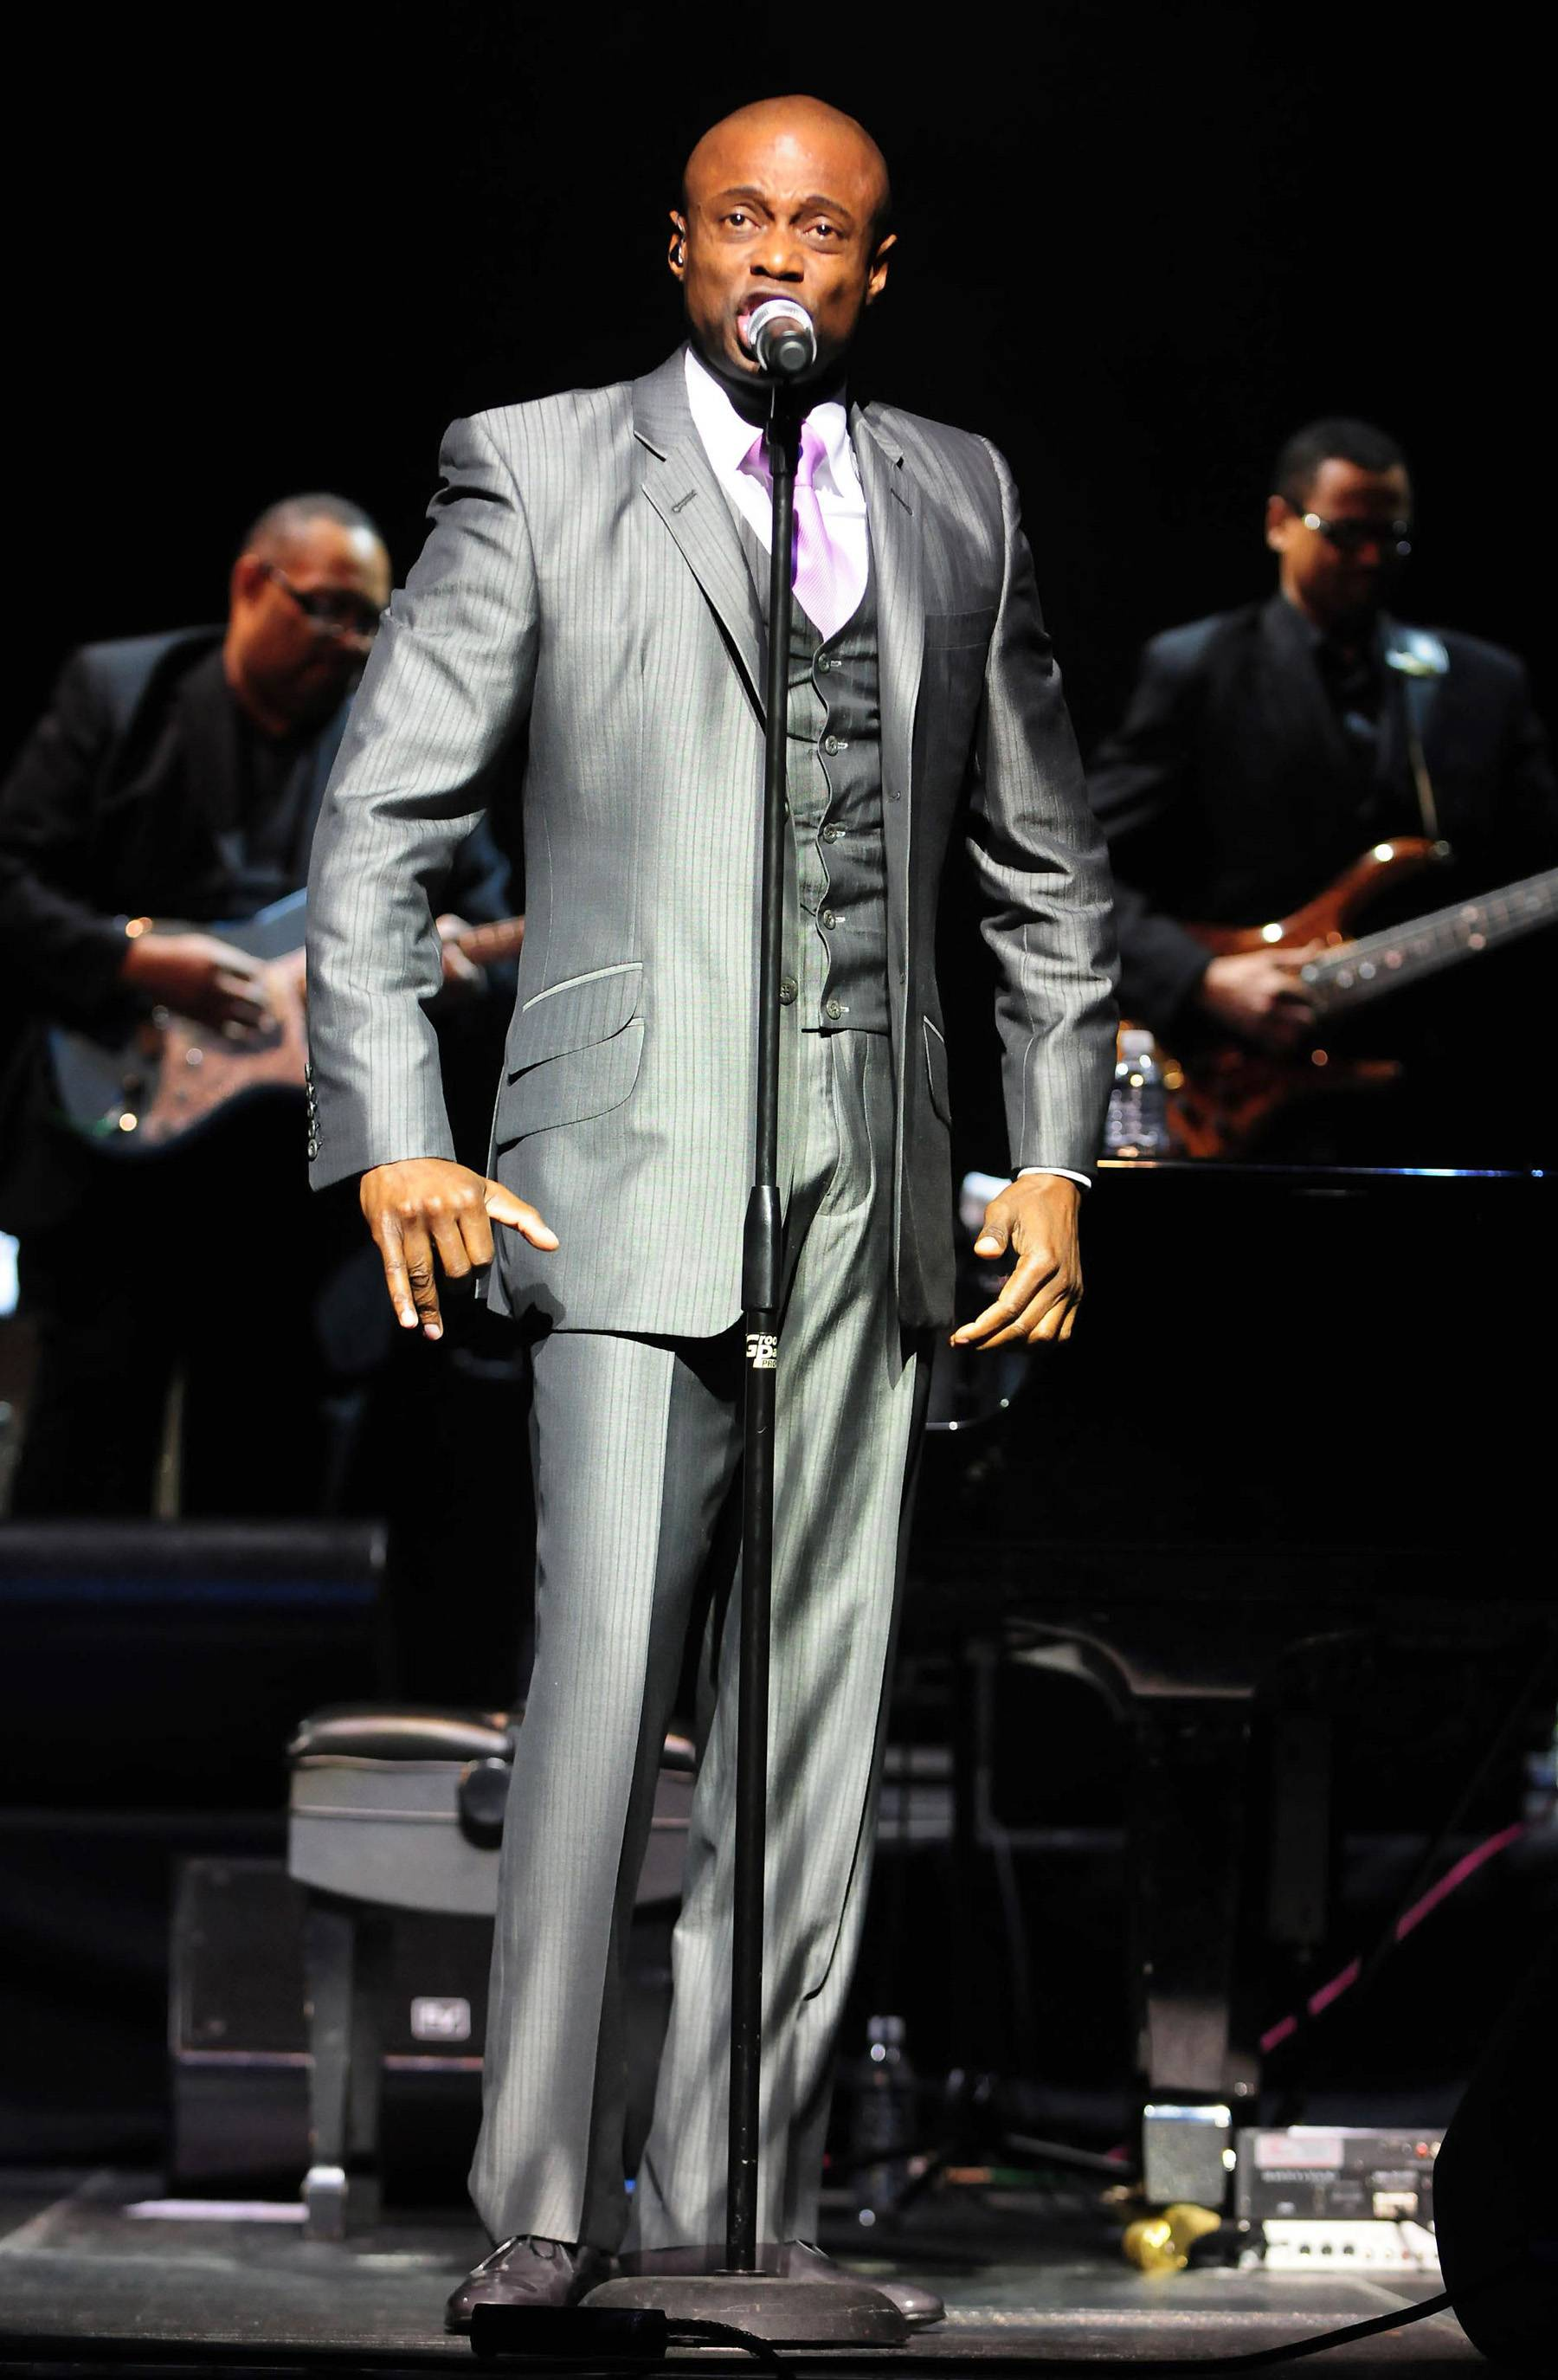 See What KEM Is Cookin' - Once again, KEM shows off his affinity for slick, chambray suiting. Perhaps he will deliver equally compelling visuals at Soul Train Awards 2014? Tune in on November 30 to find out.  (Photo: Johnny Louis/WENN.com)